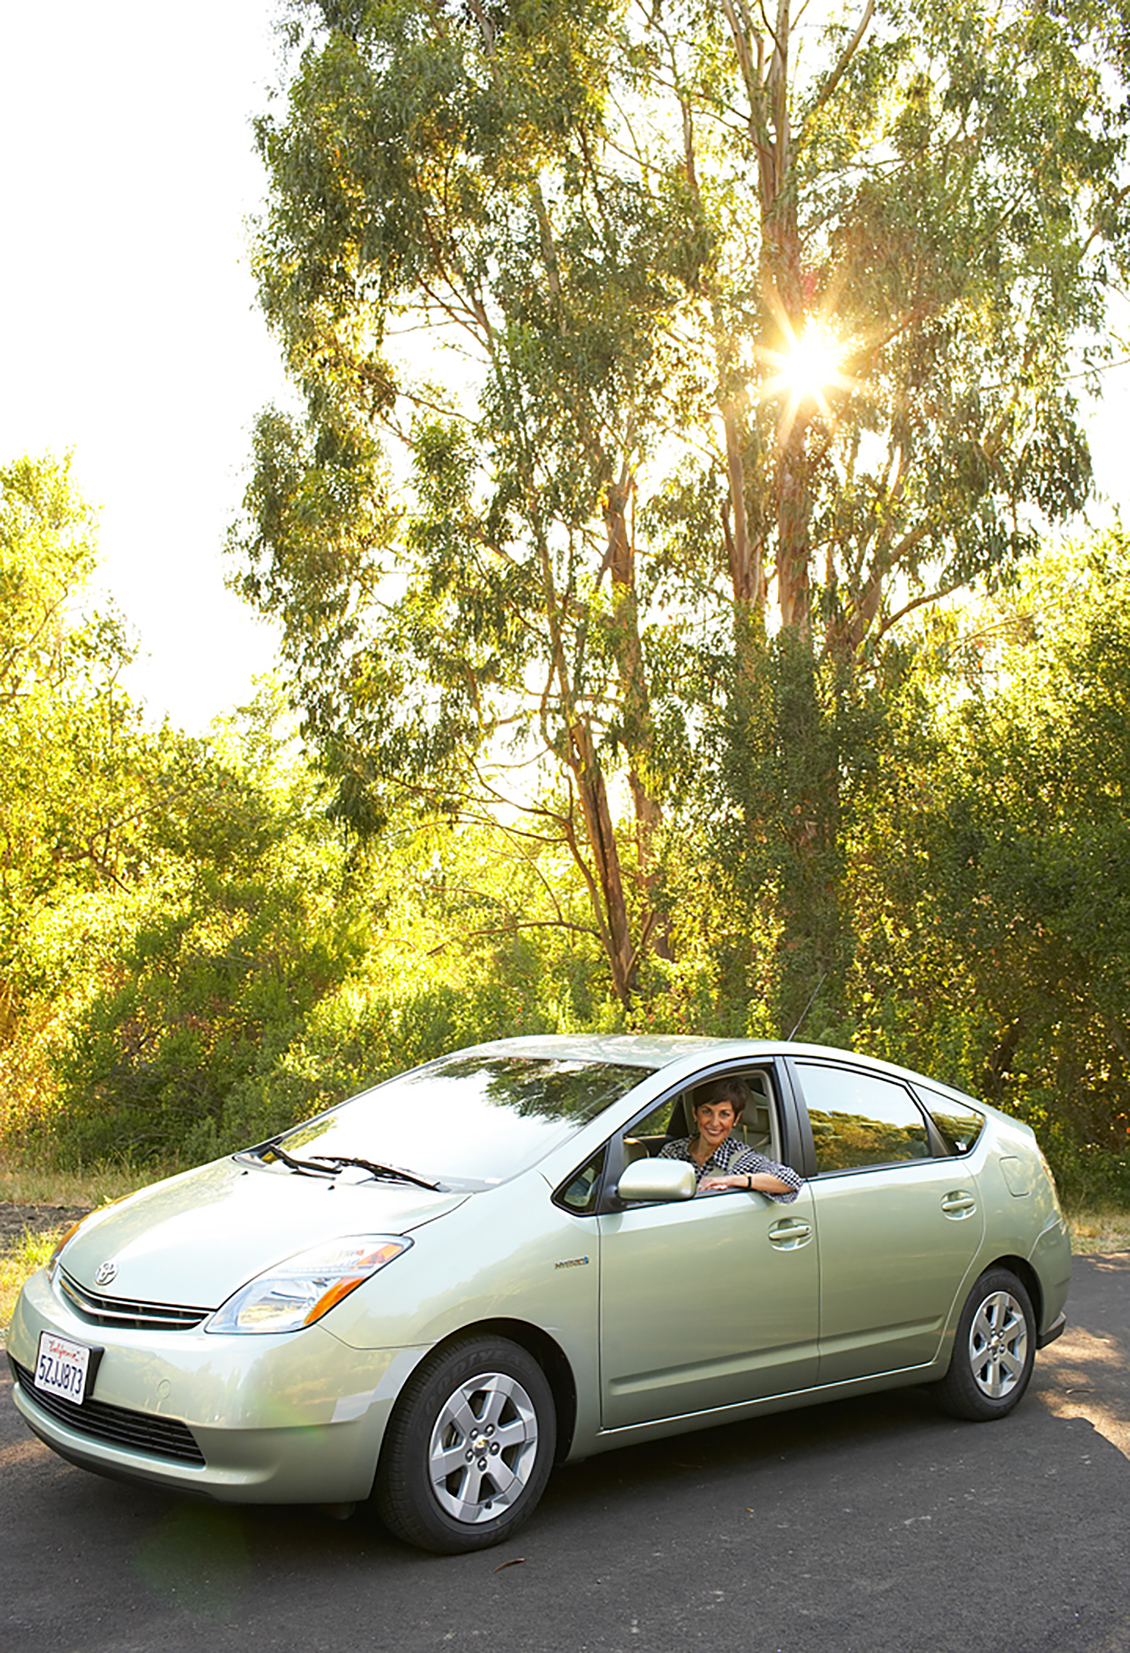 Prius and green trees art director for lifestyle photography